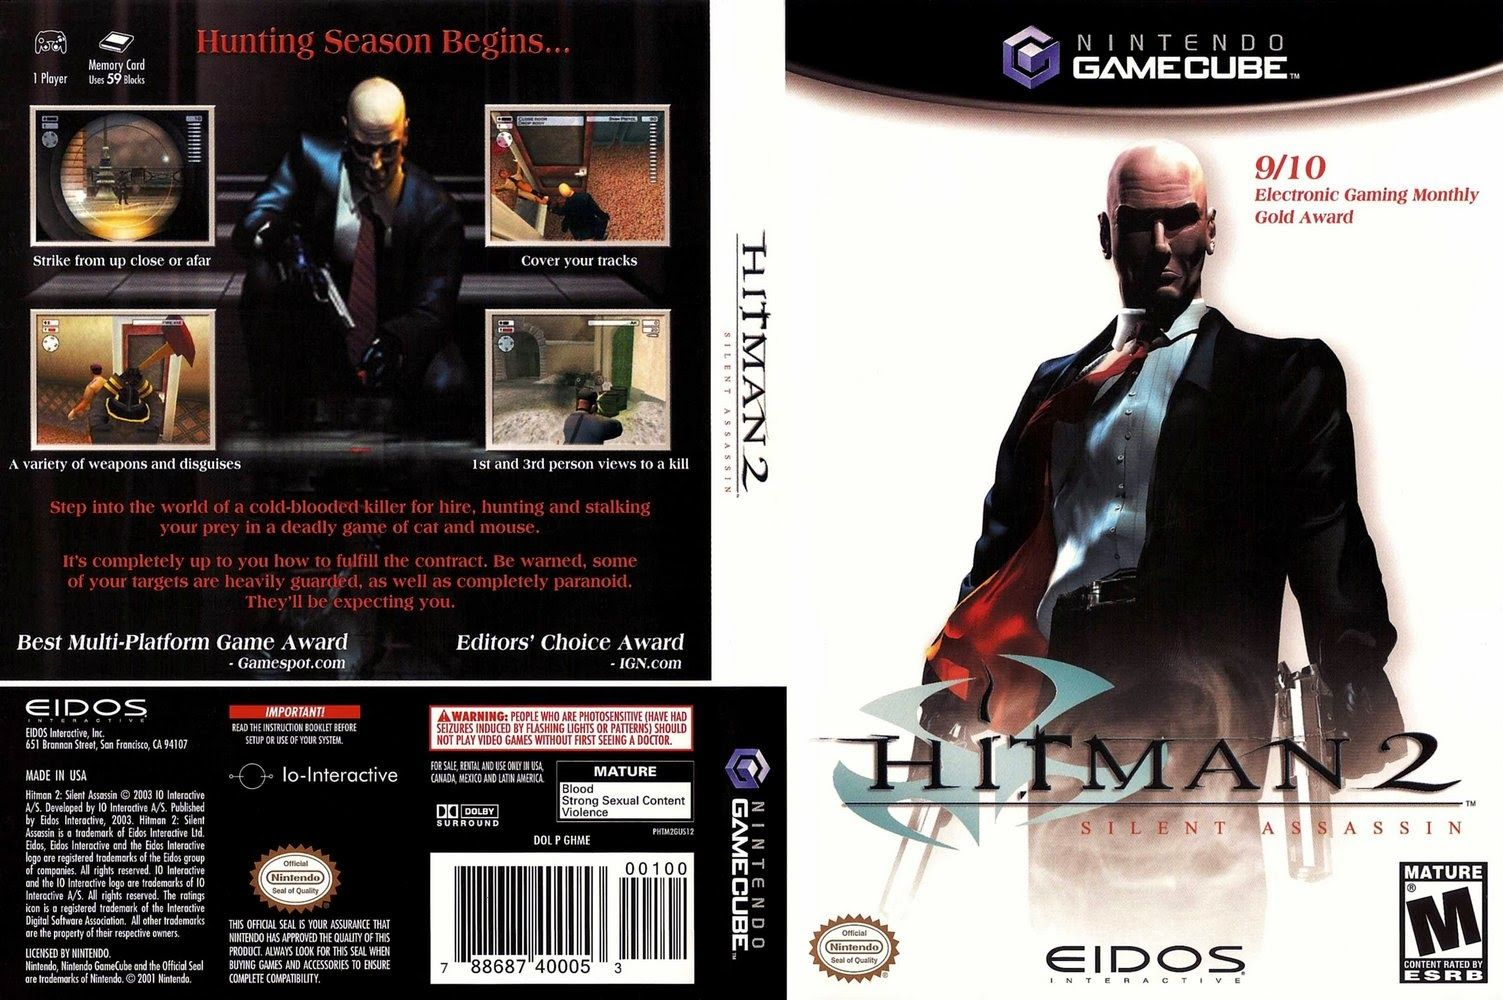 hitman 6 pc game free download highly compressed